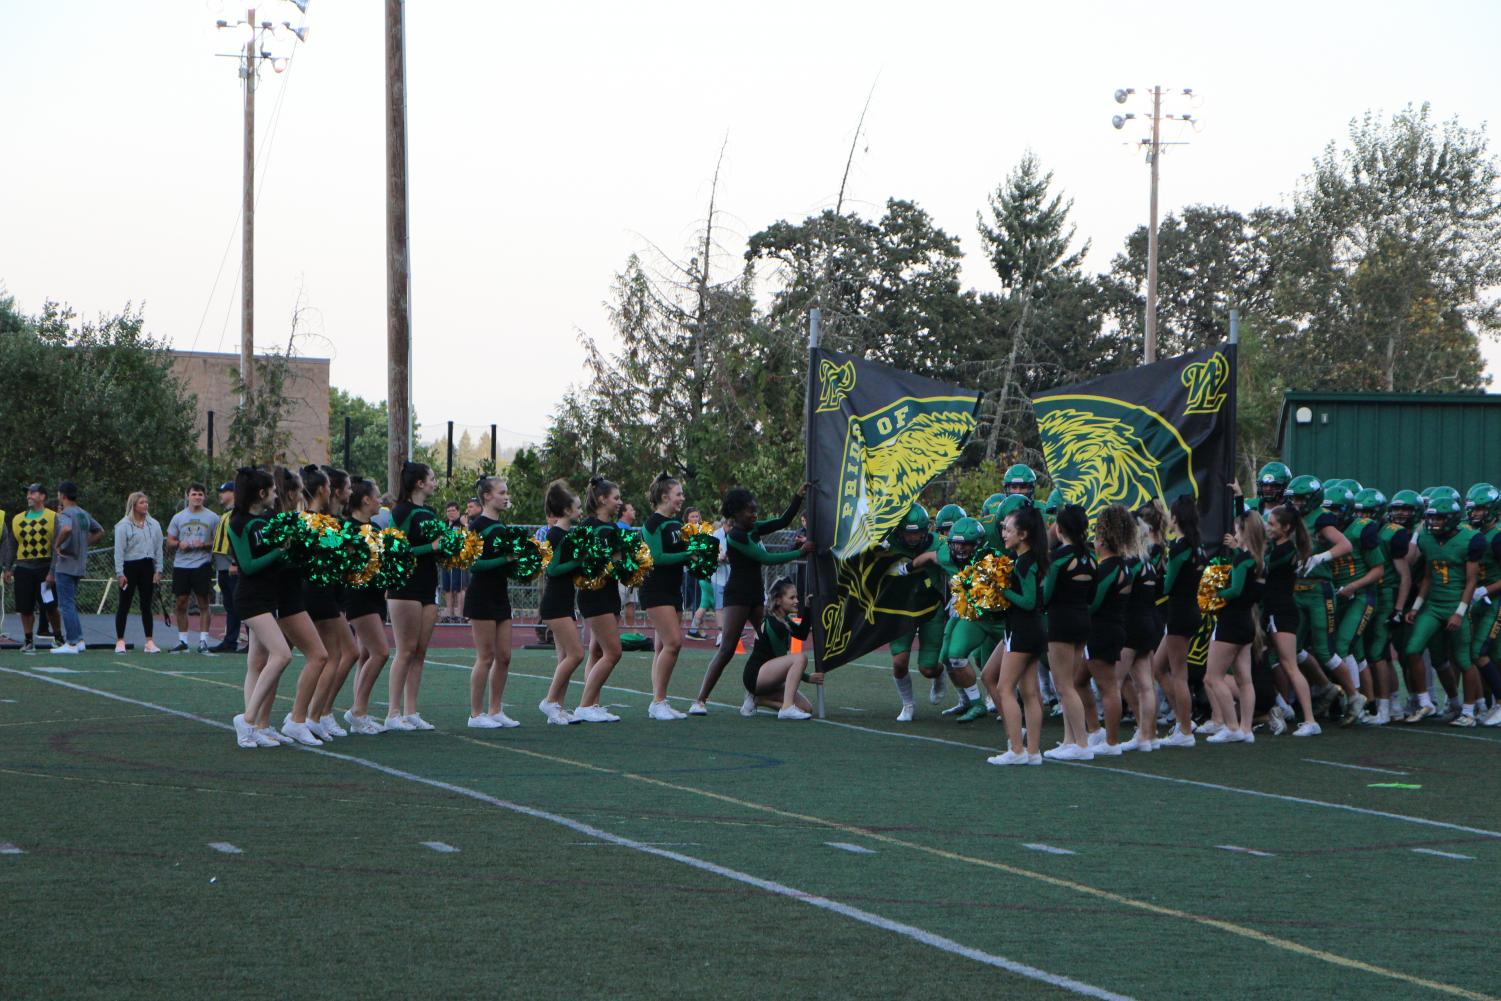 Players break through the  West Linn banner to start the game.